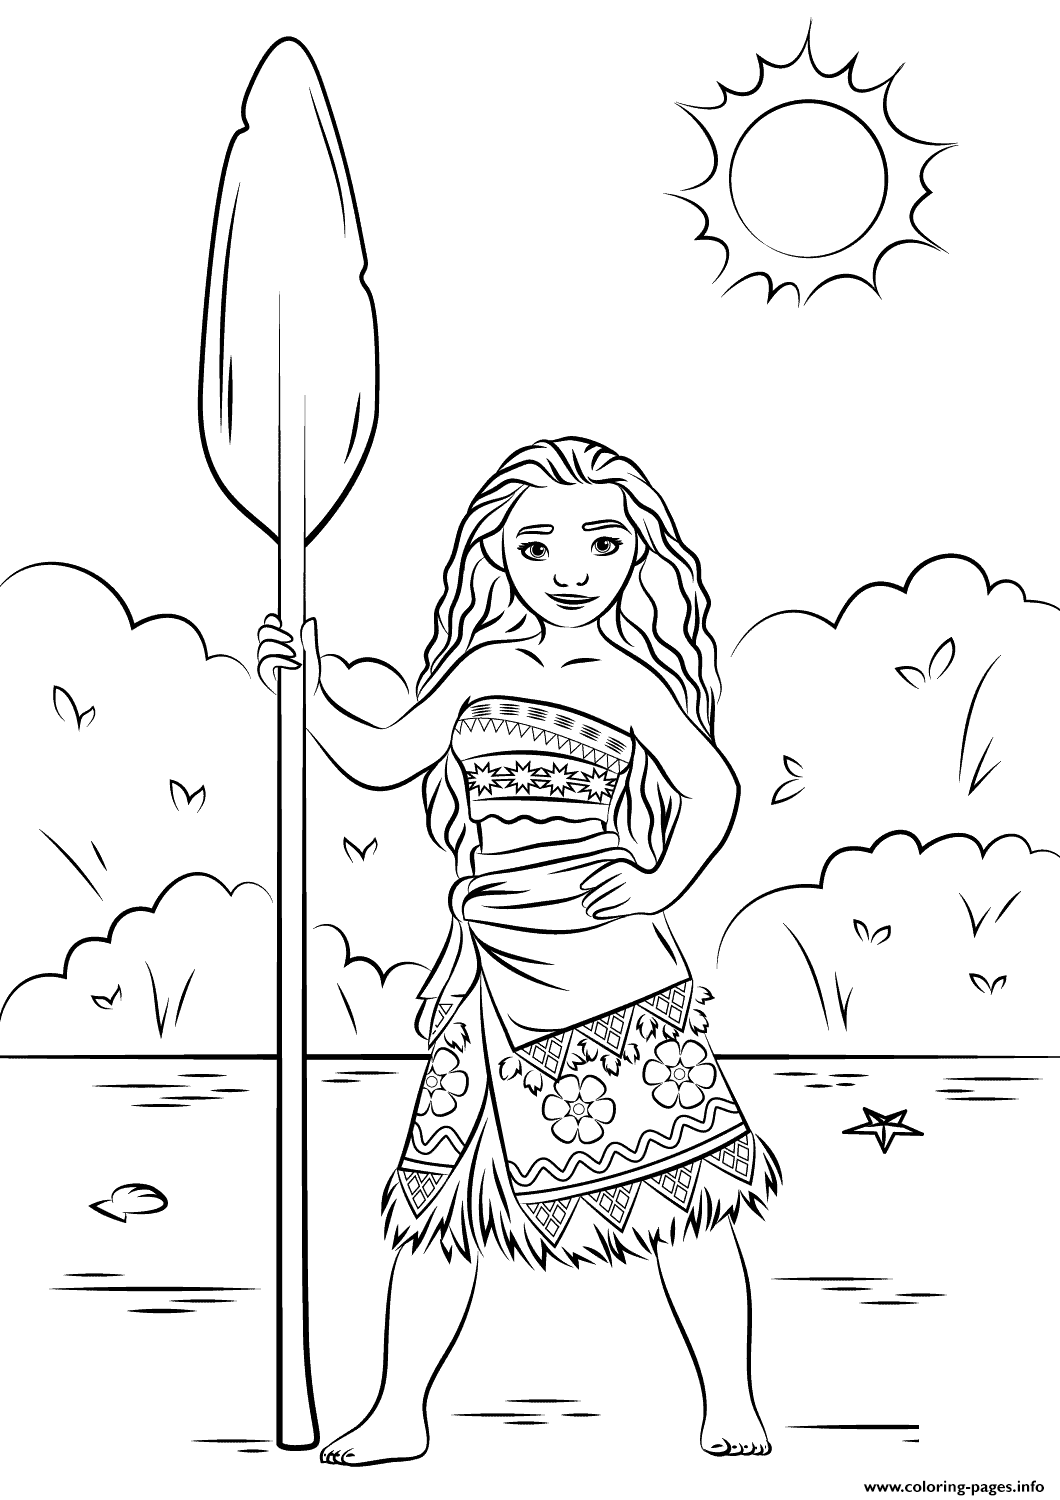 Disney universe coloring pages - Print Princess Moana Disney Coloring Pages